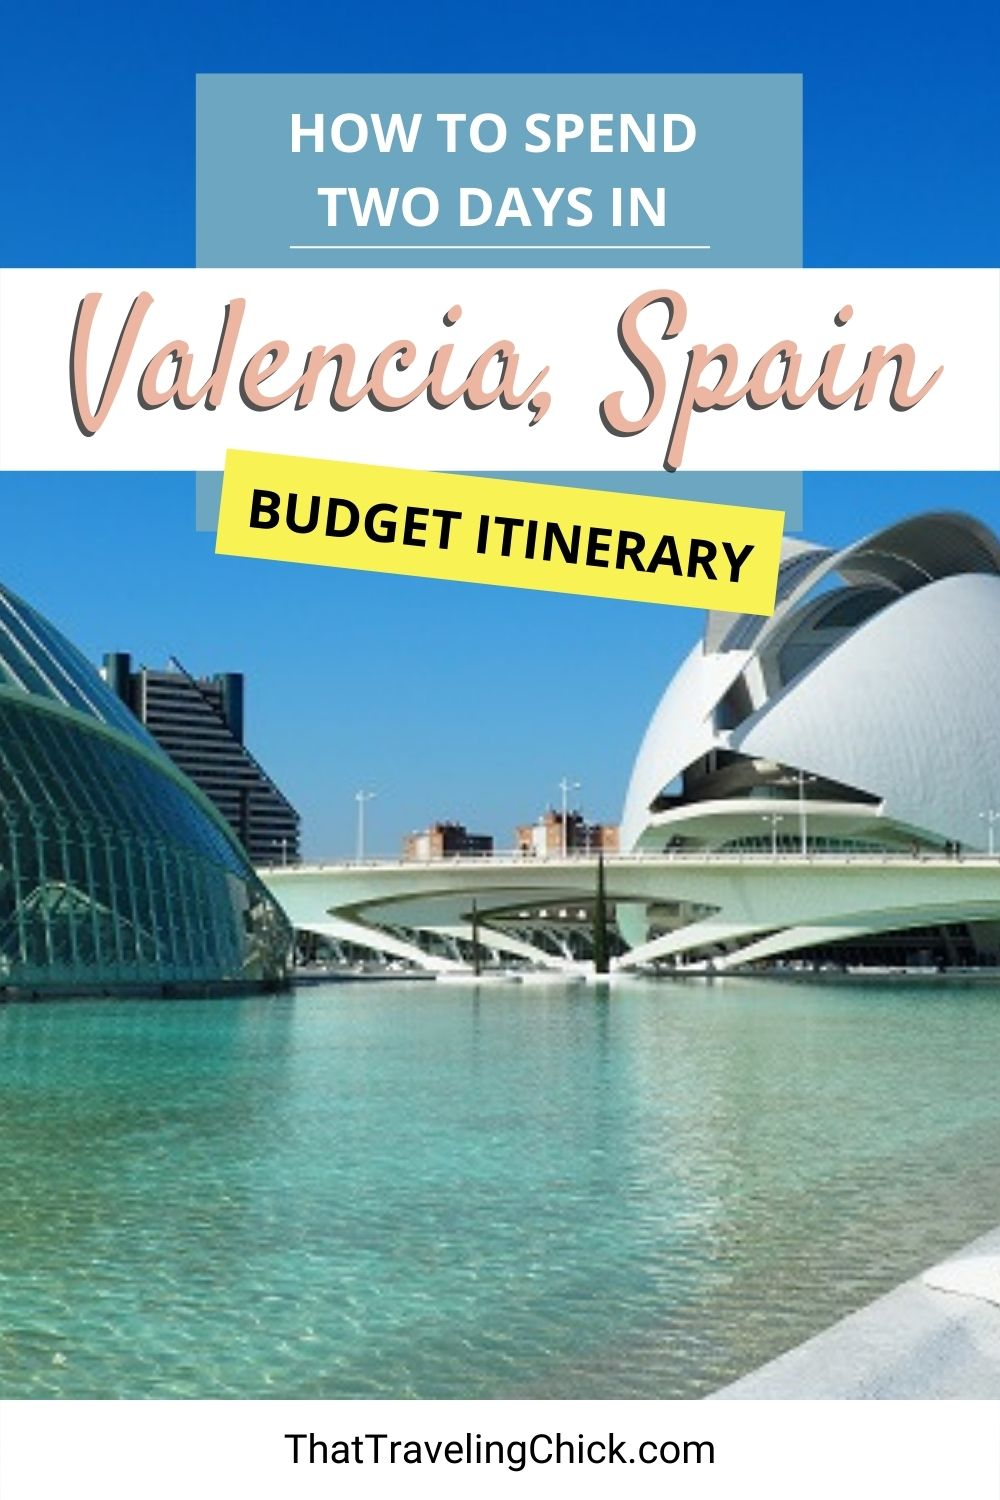 How to Spend Two Days in Valencia